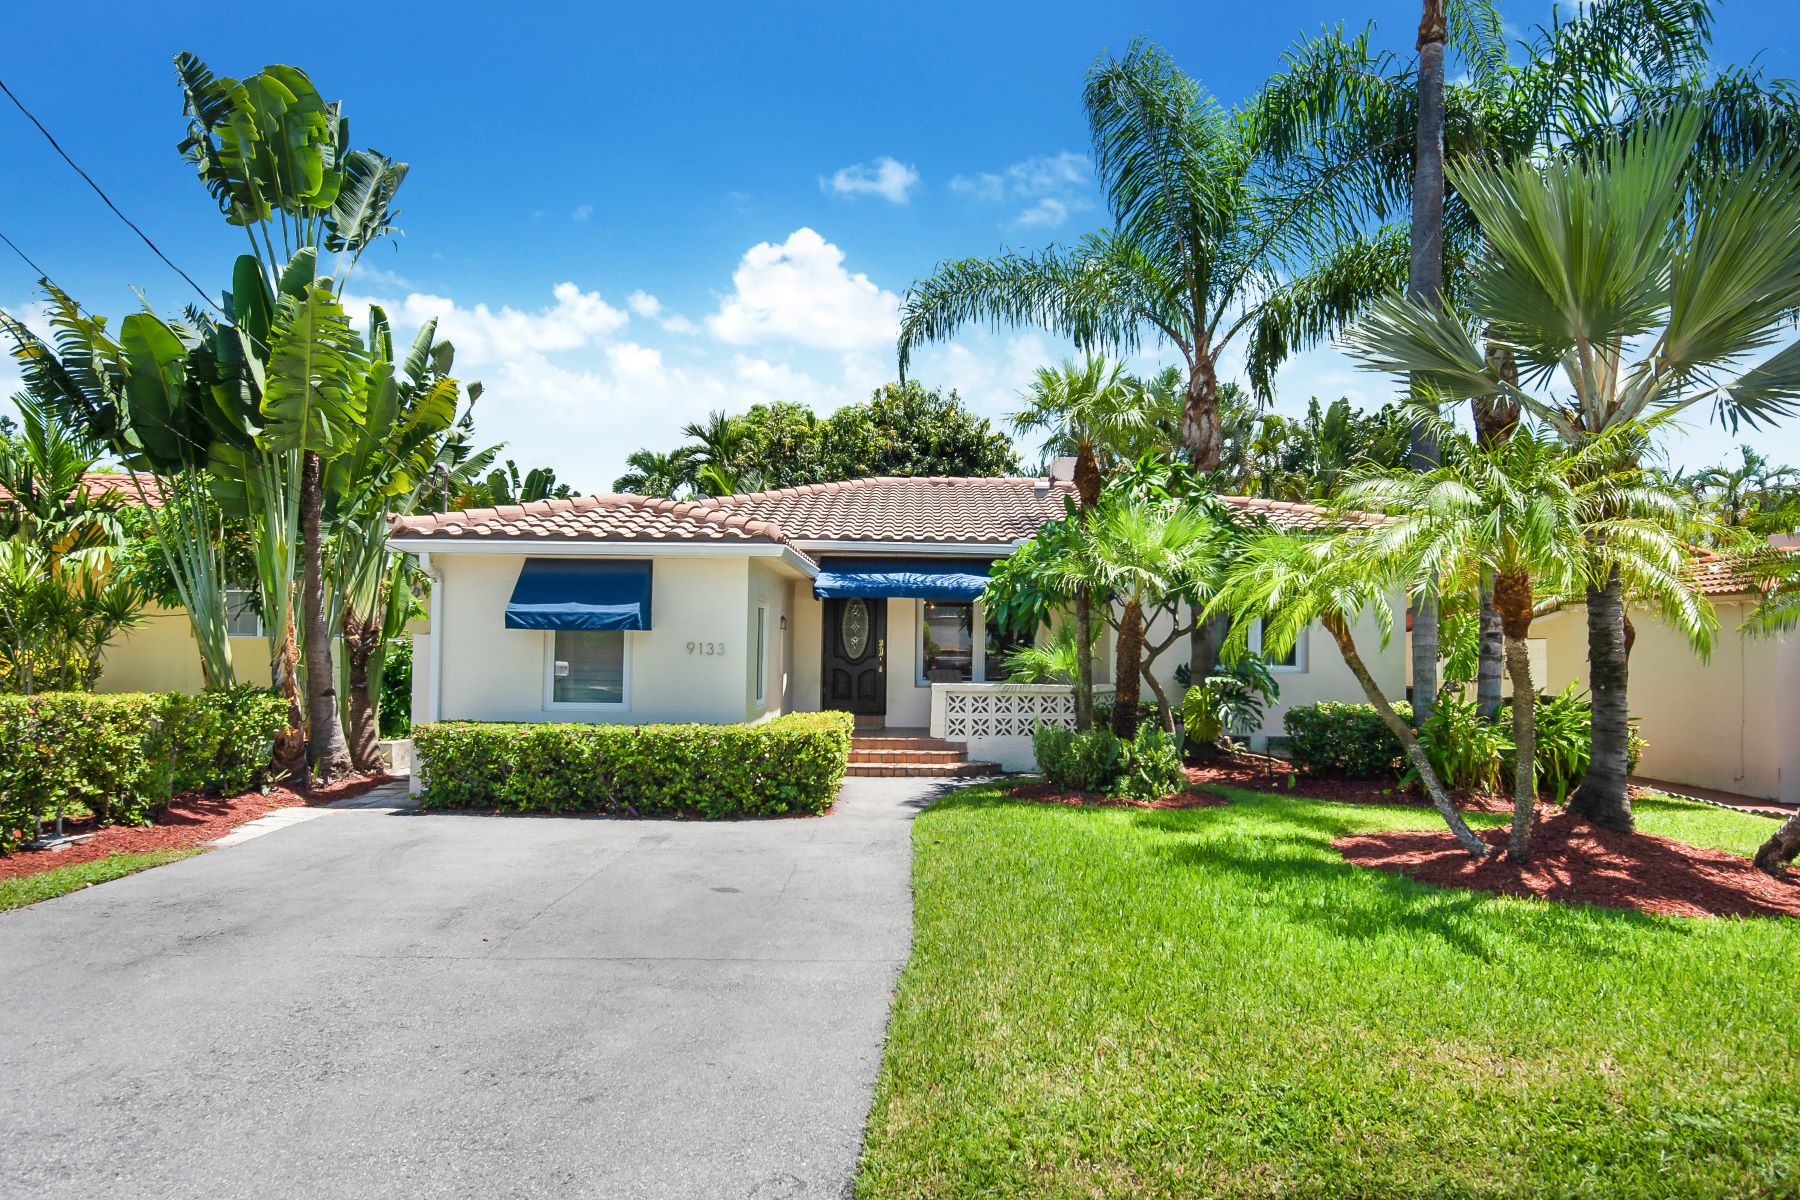 Single Family Homes for Sale at 9133 Byron Ave Surfside, Florida 33154 United States